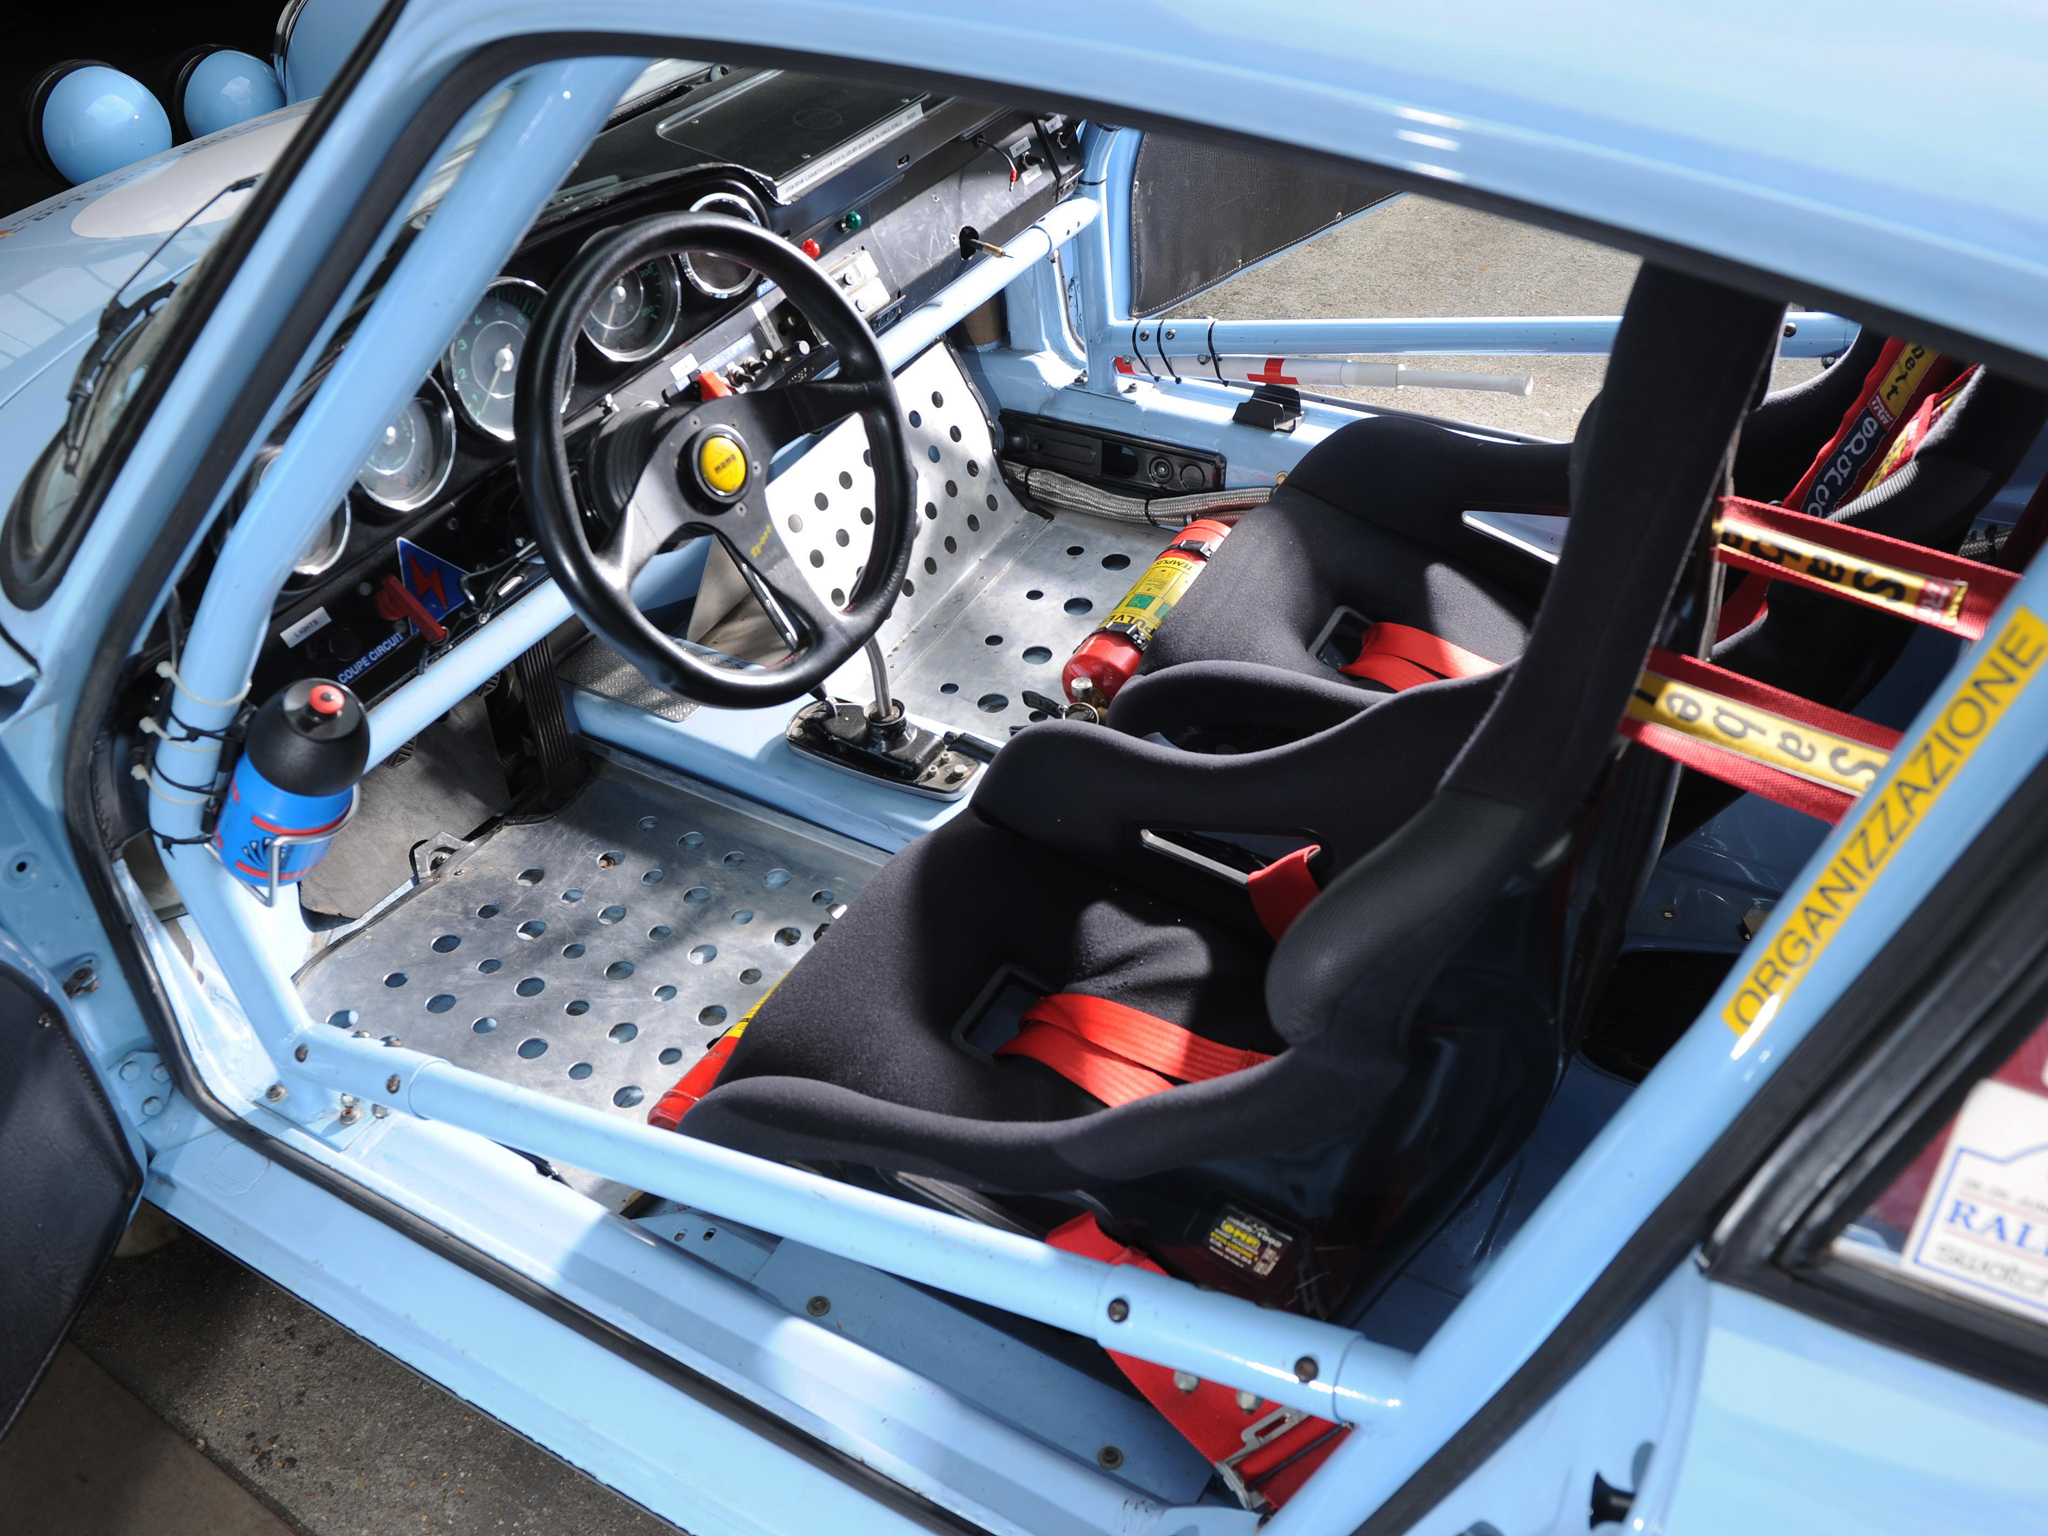 Porsche Swb Fia Rally Race Racing Interior Wallpaper